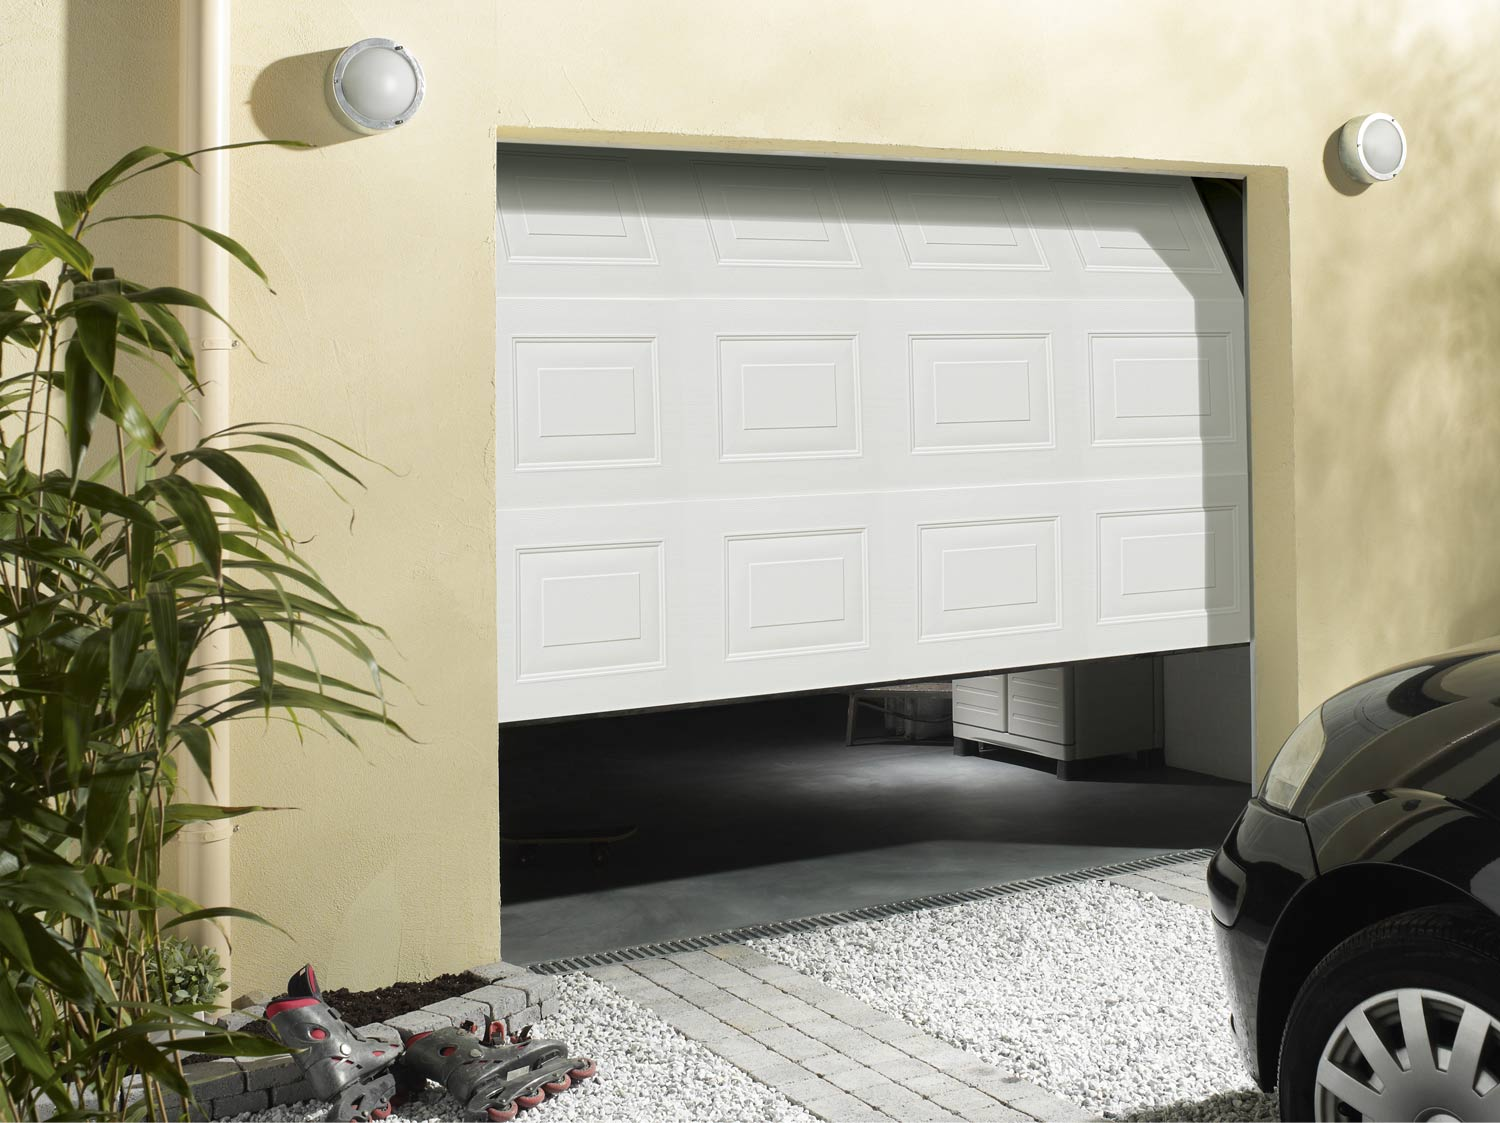 Comment poser une porte de garage sectionnelle leroy for Installation porte de garage enroulable